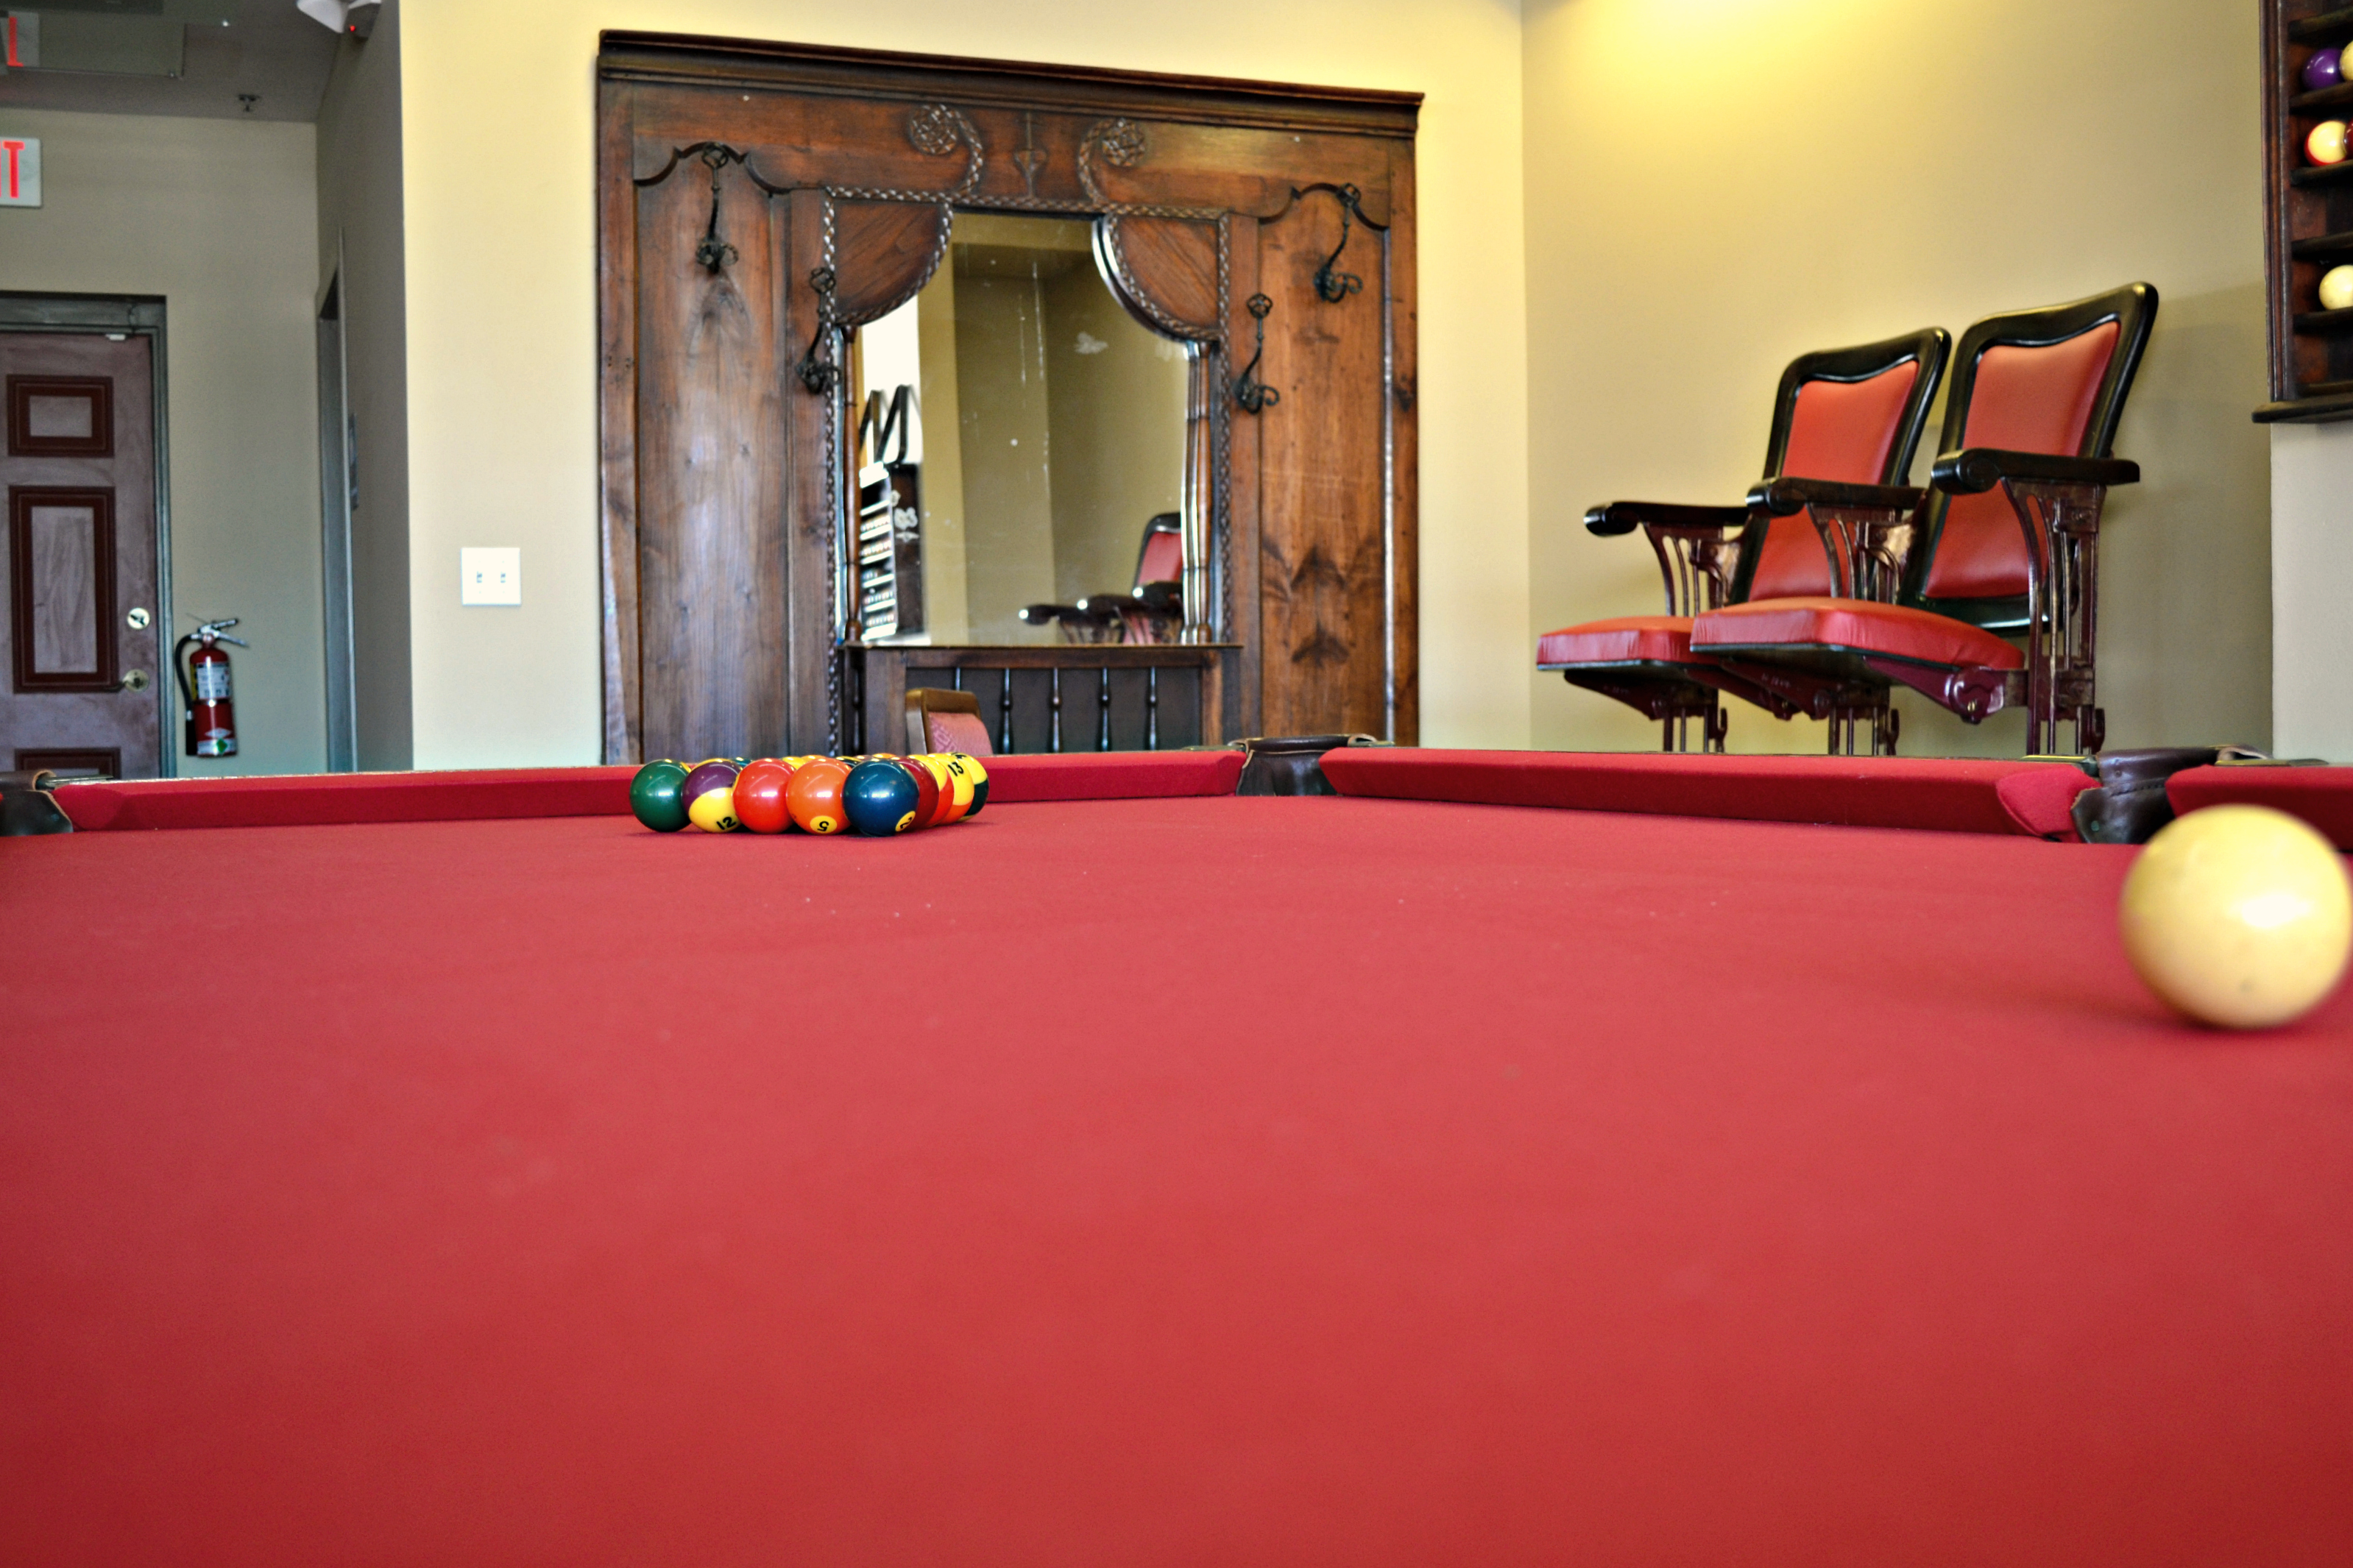 Enjoy A Game of Pool while you wait!